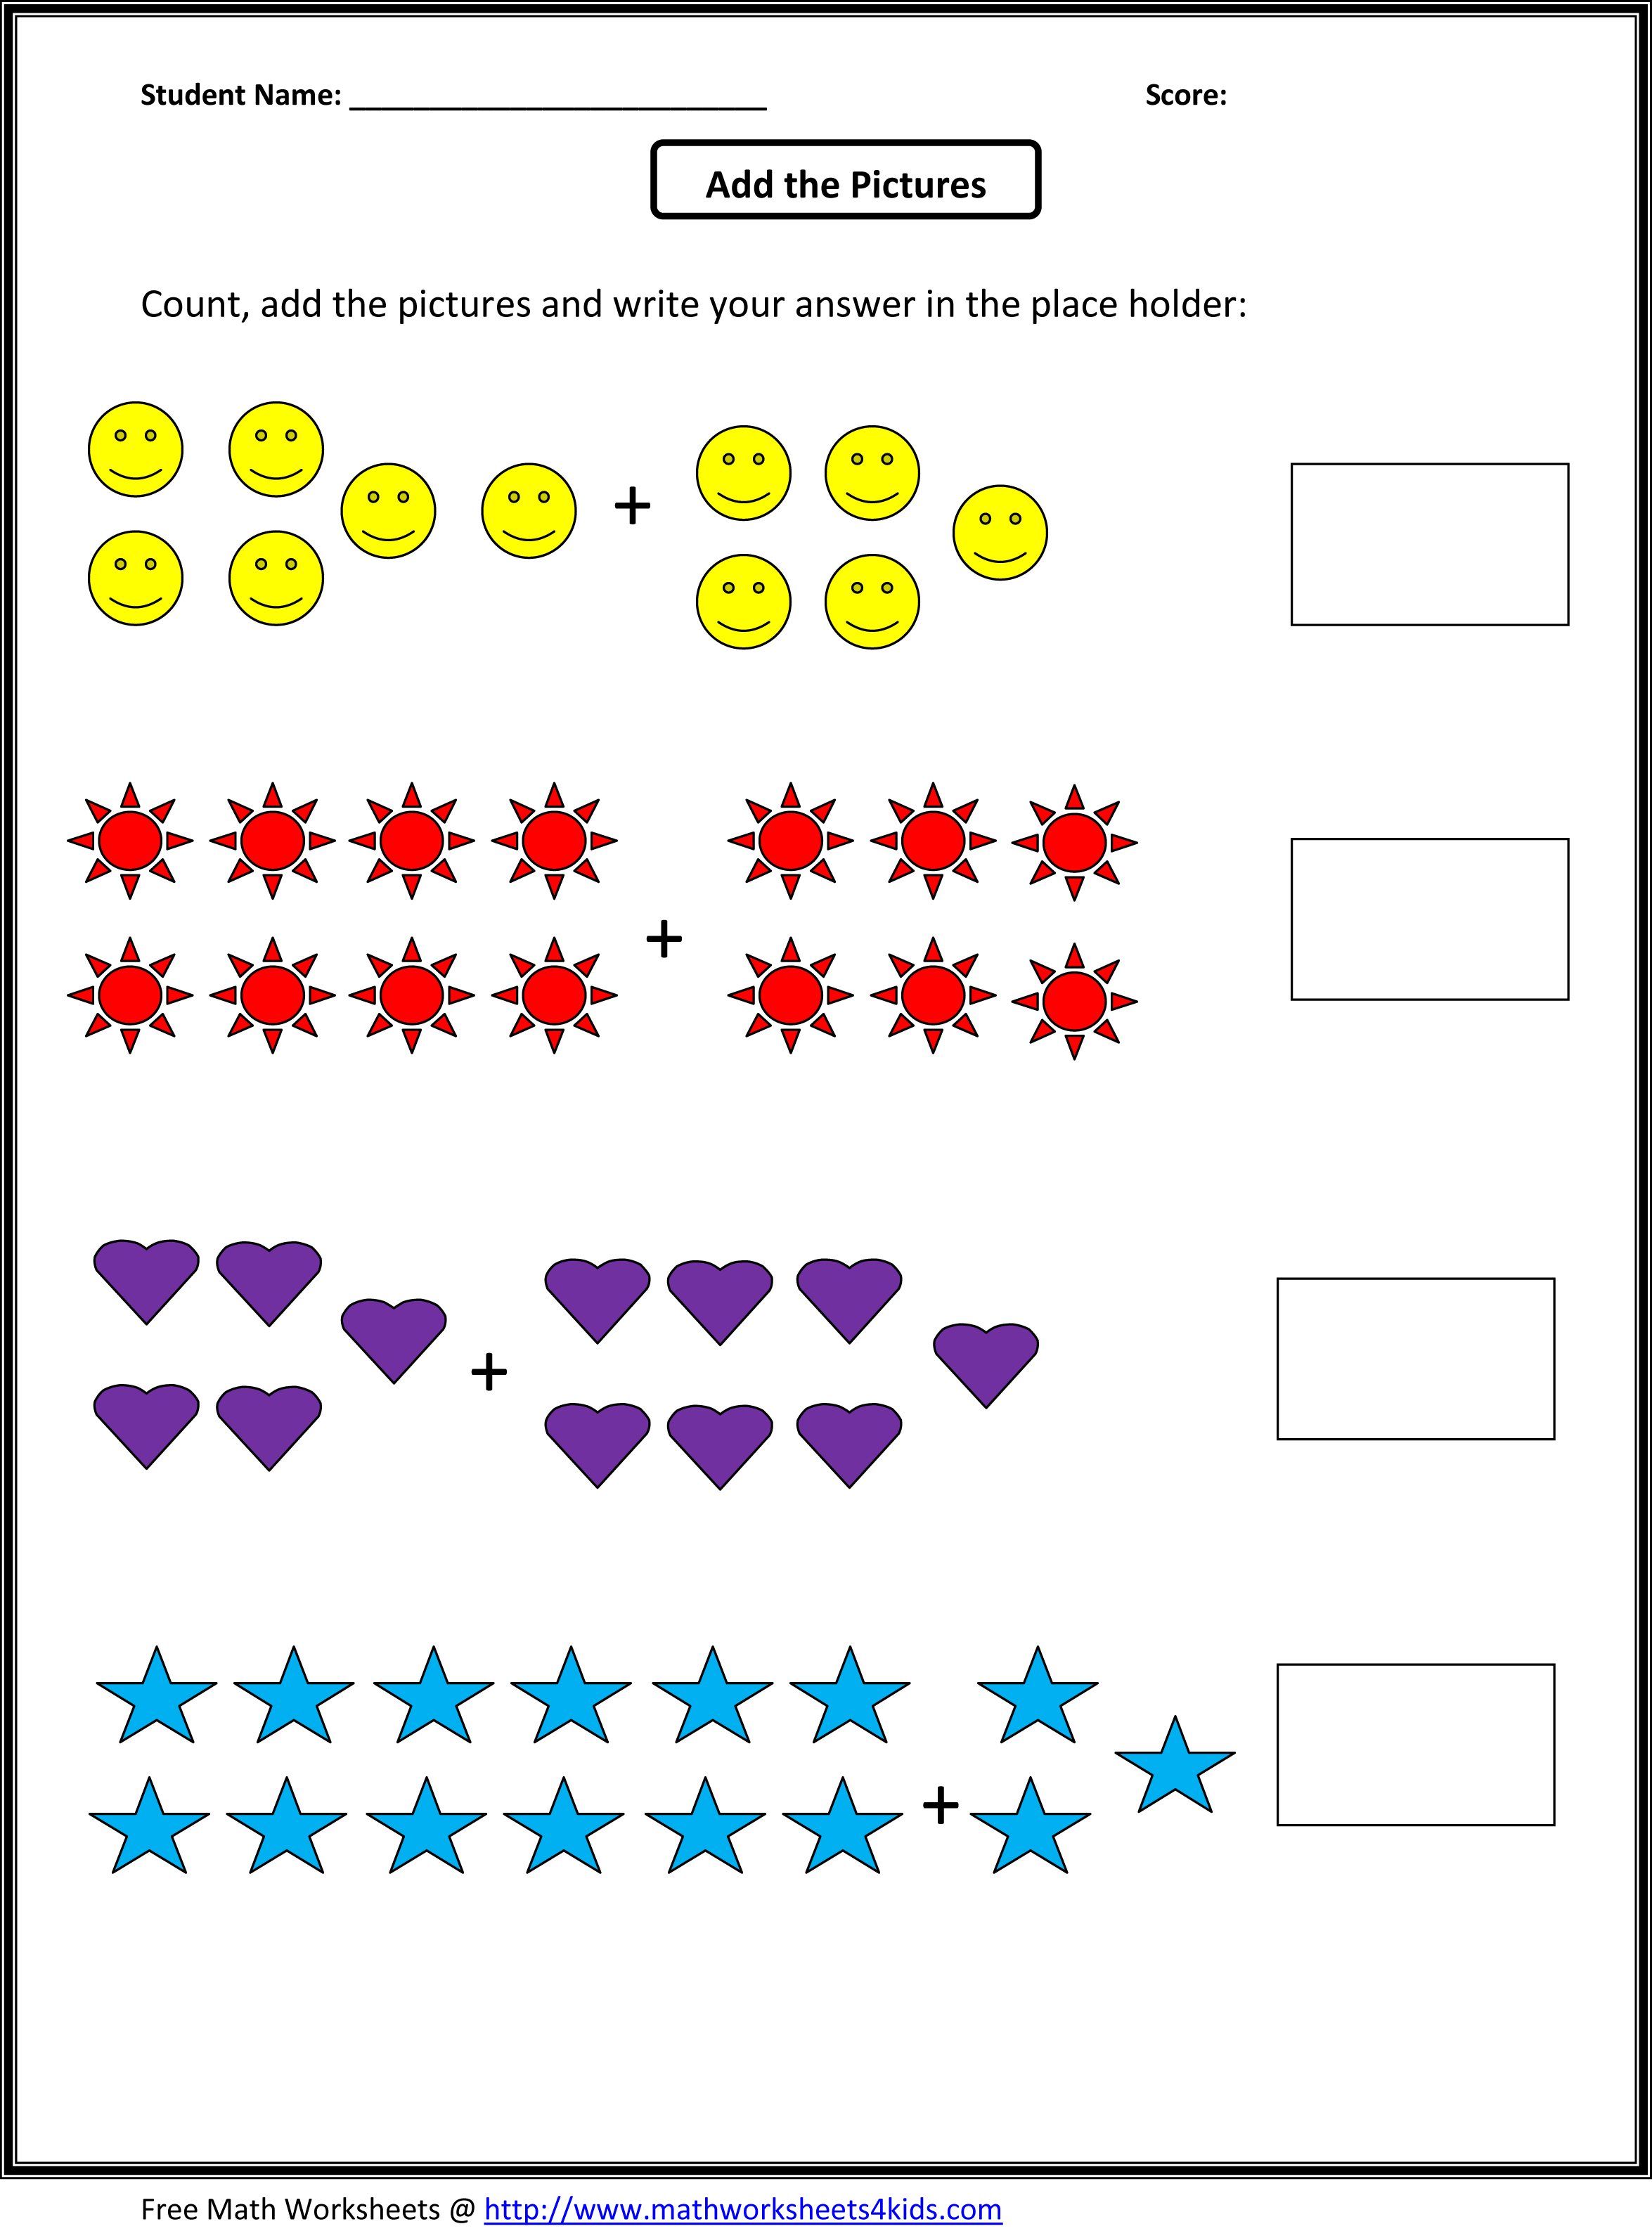 Proatmealus  Mesmerizing Grade  Maths Worksheet  Reocurent With Engaging Math Worksheets For St Grade Free  Reocurent With Breathtaking Worksheet On Five Senses Also Moon Phases Worksheet Kids In Addition Gcse Worksheets Science And Circumference And Area Of Circles Worksheets As Well As Used To Esl Worksheet Additionally Multiplication Worksheets Year  From Reocurentcom With Proatmealus  Engaging Grade  Maths Worksheet  Reocurent With Breathtaking Math Worksheets For St Grade Free  Reocurent And Mesmerizing Worksheet On Five Senses Also Moon Phases Worksheet Kids In Addition Gcse Worksheets Science From Reocurentcom